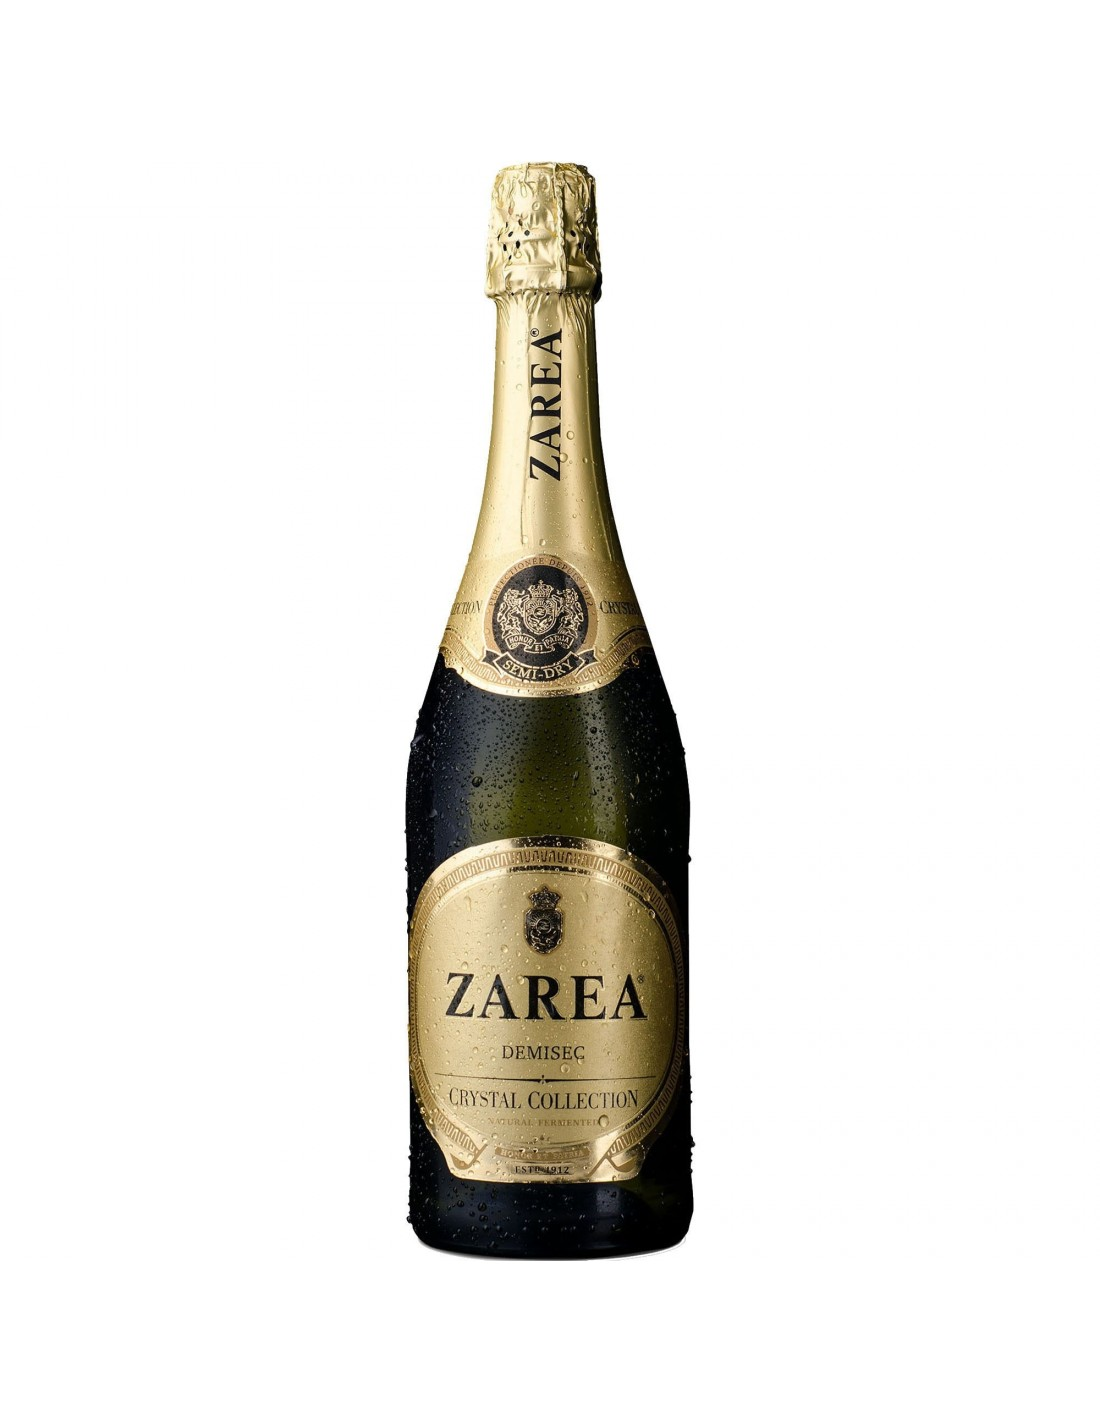 Vin spumant alb demisec, Zarea Crystal Collection, 0.75L, 11% alc., Romania